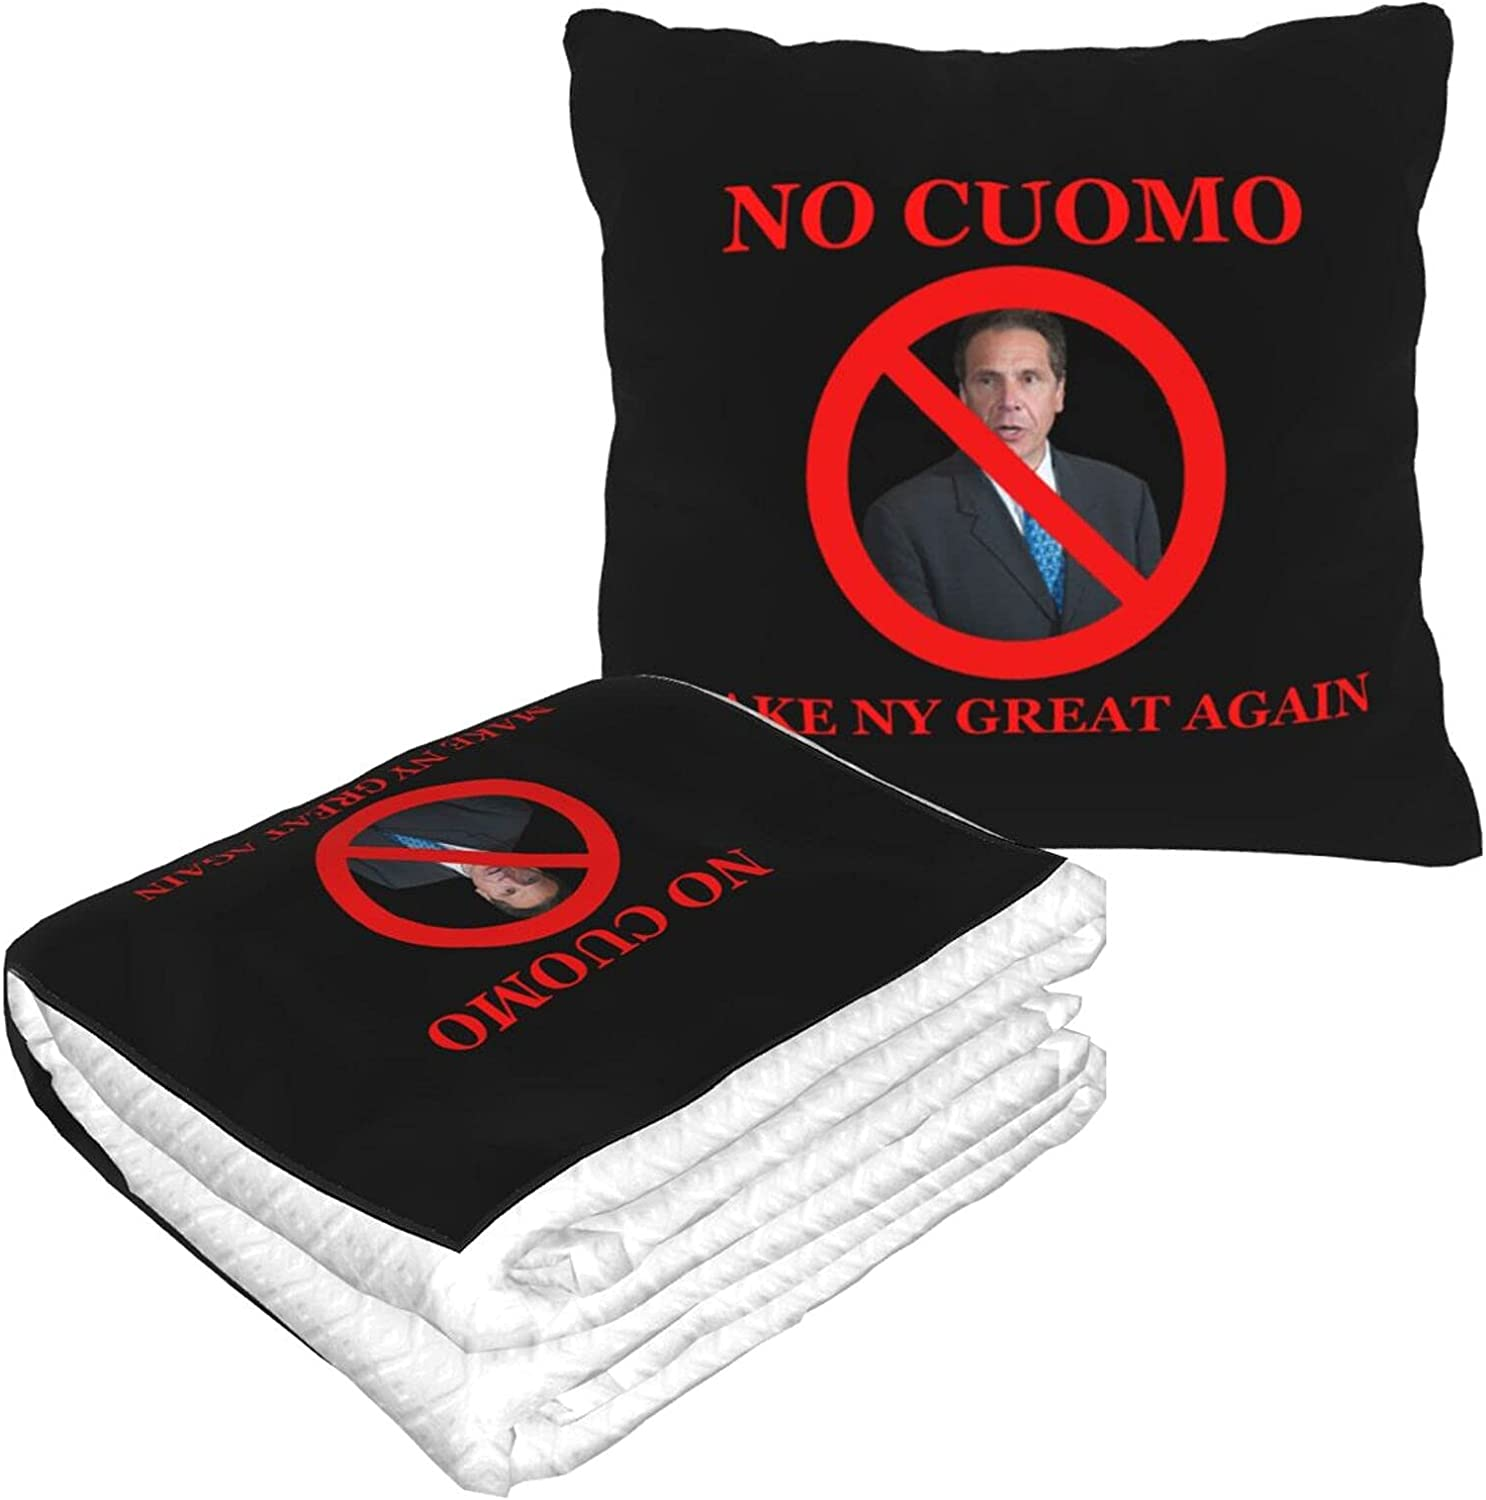 Foldable Pillow Blanket No Cuomo Make Travel NY Our shop most Bombing free shipping popular Again Great for